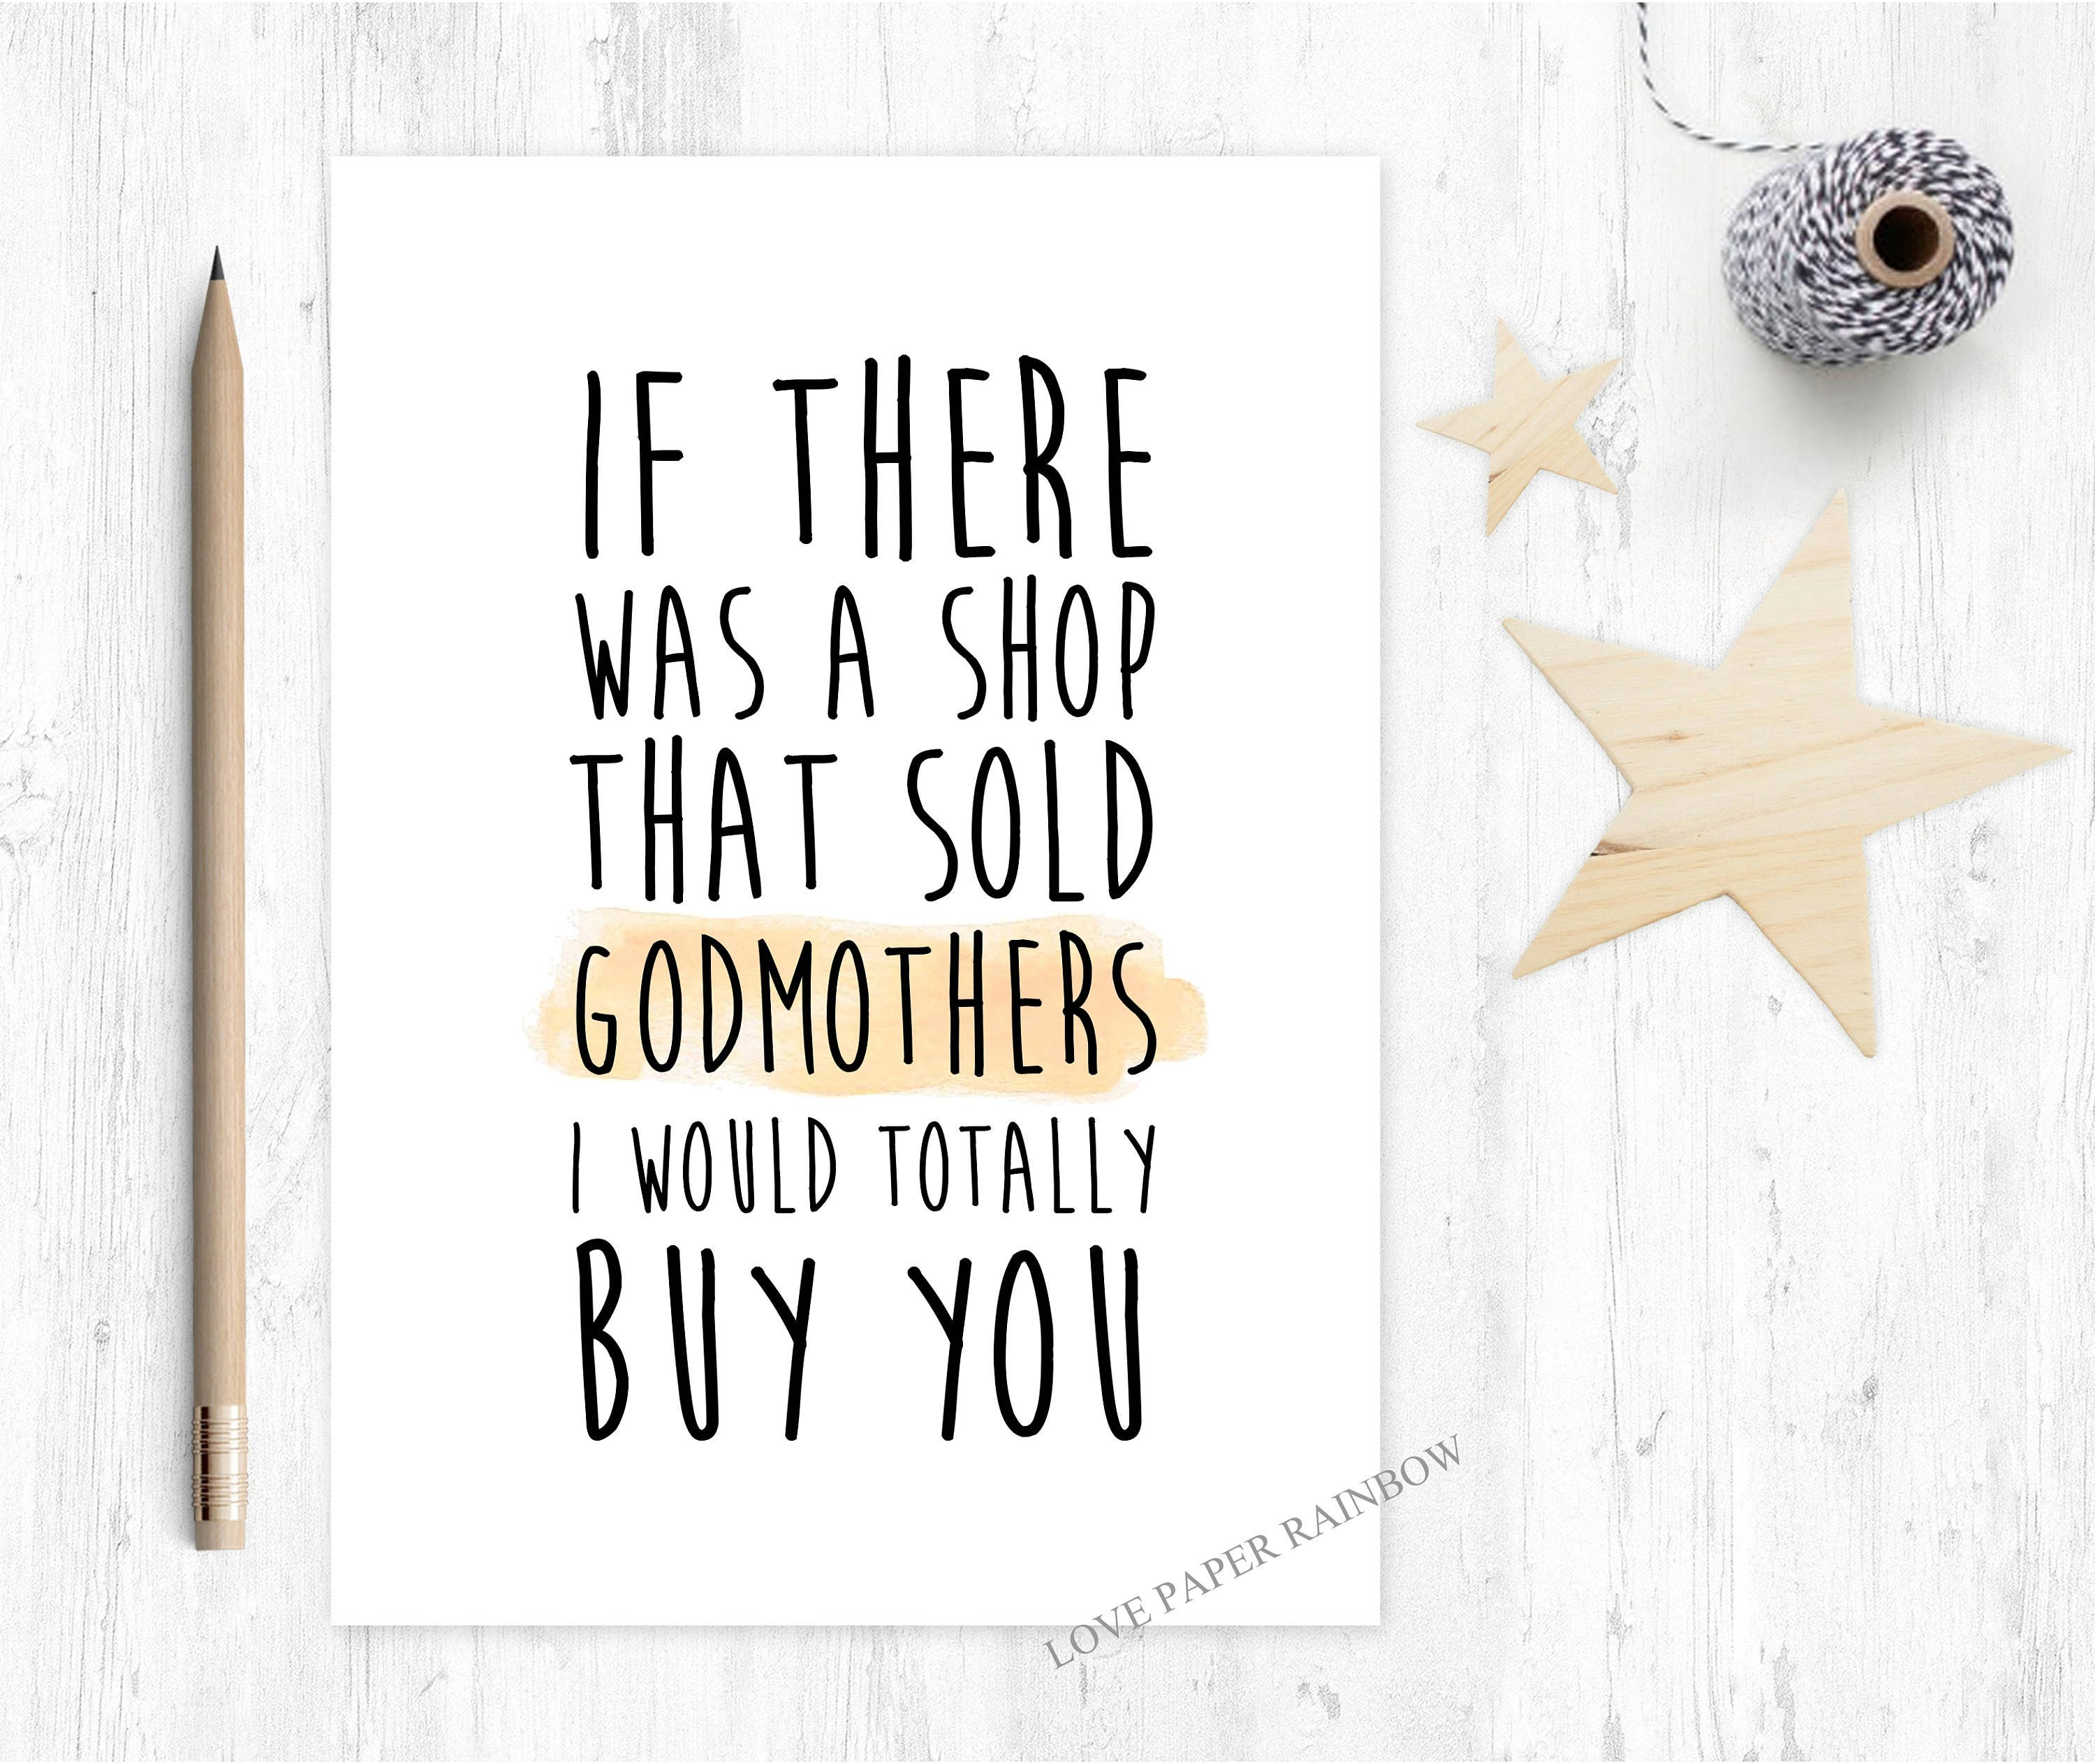 Godmother card funny godmother card godmother quote godmother godmother card funny godmother card godmother quote godmother birthday card thanks godmother will you be my godmother bookmarktalkfo Gallery